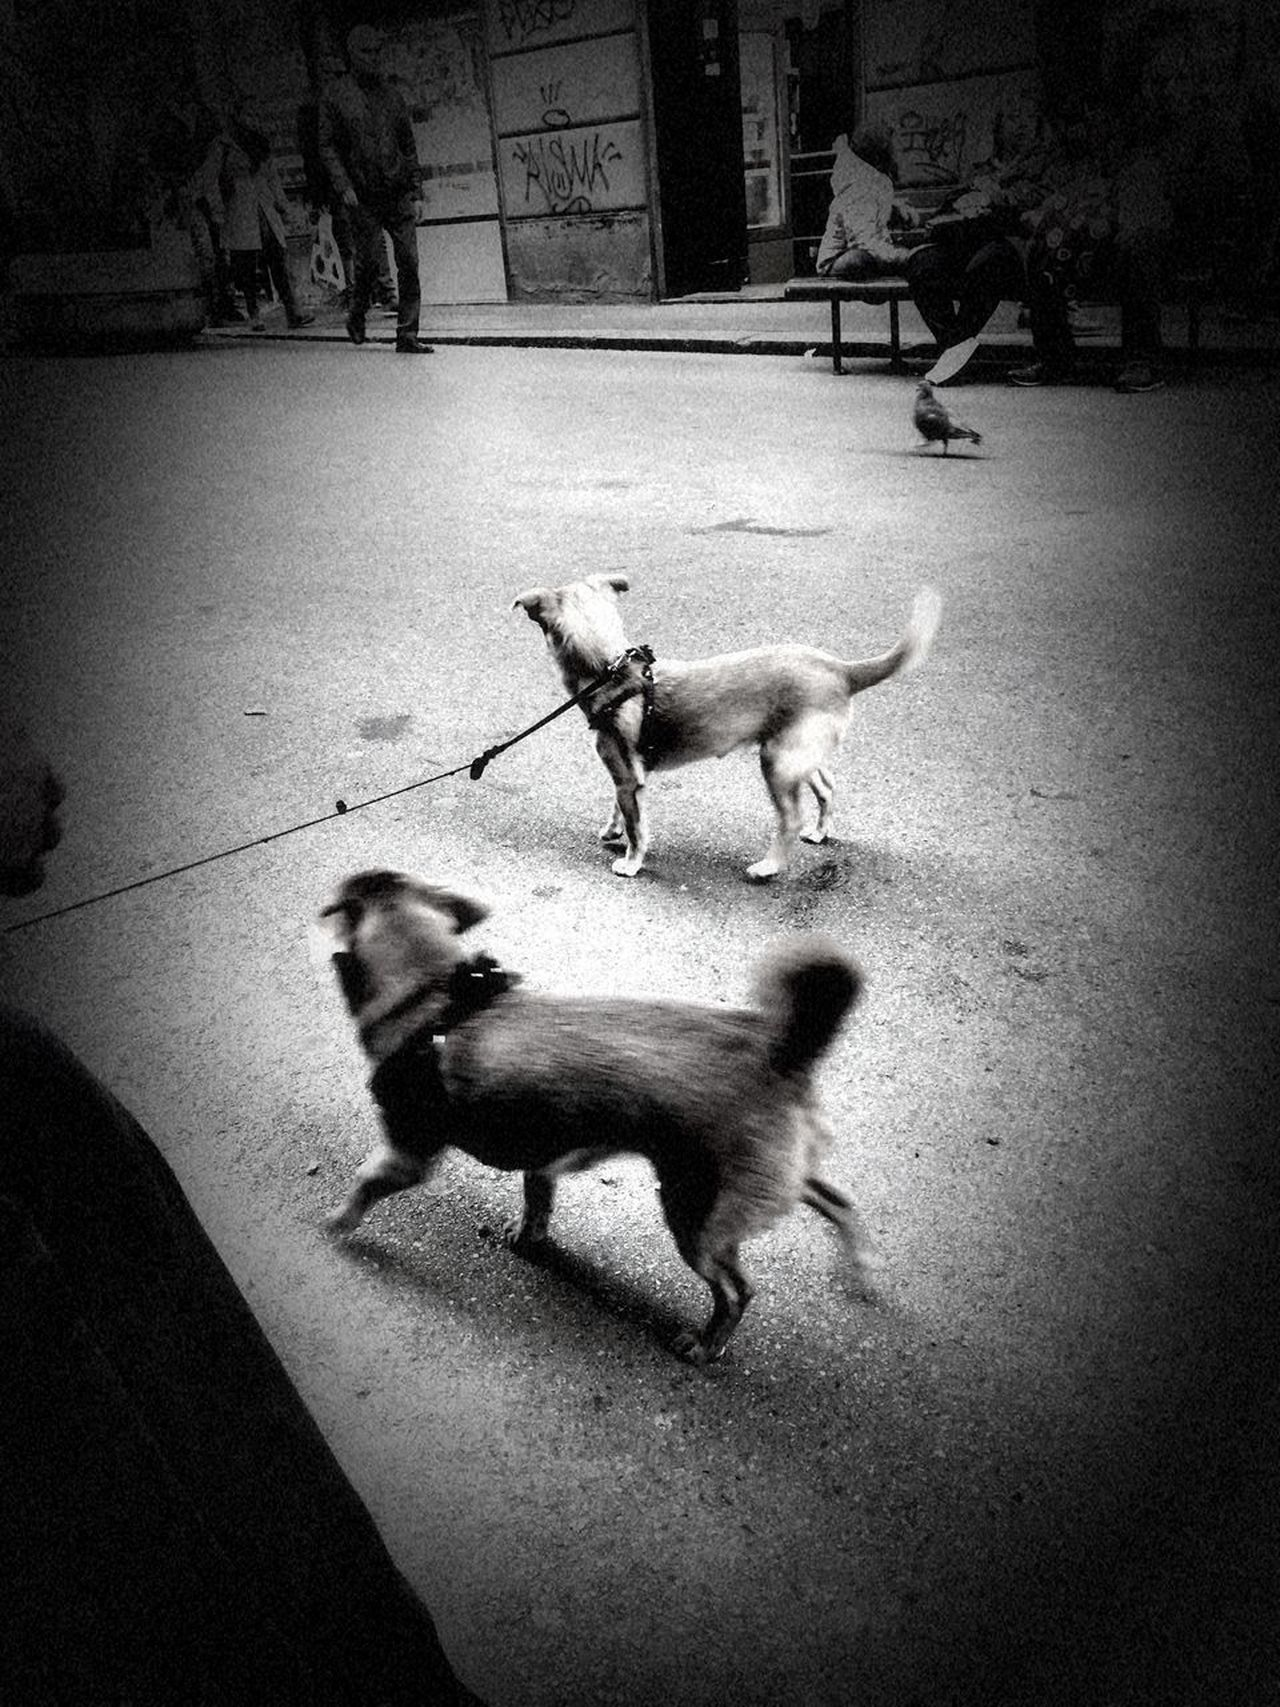 Animal Themes Day Dog Dog Lead Domestic Animals Full Length High Angle View Low Section Mammal No People Outdoors Pets Togetherness Vignette